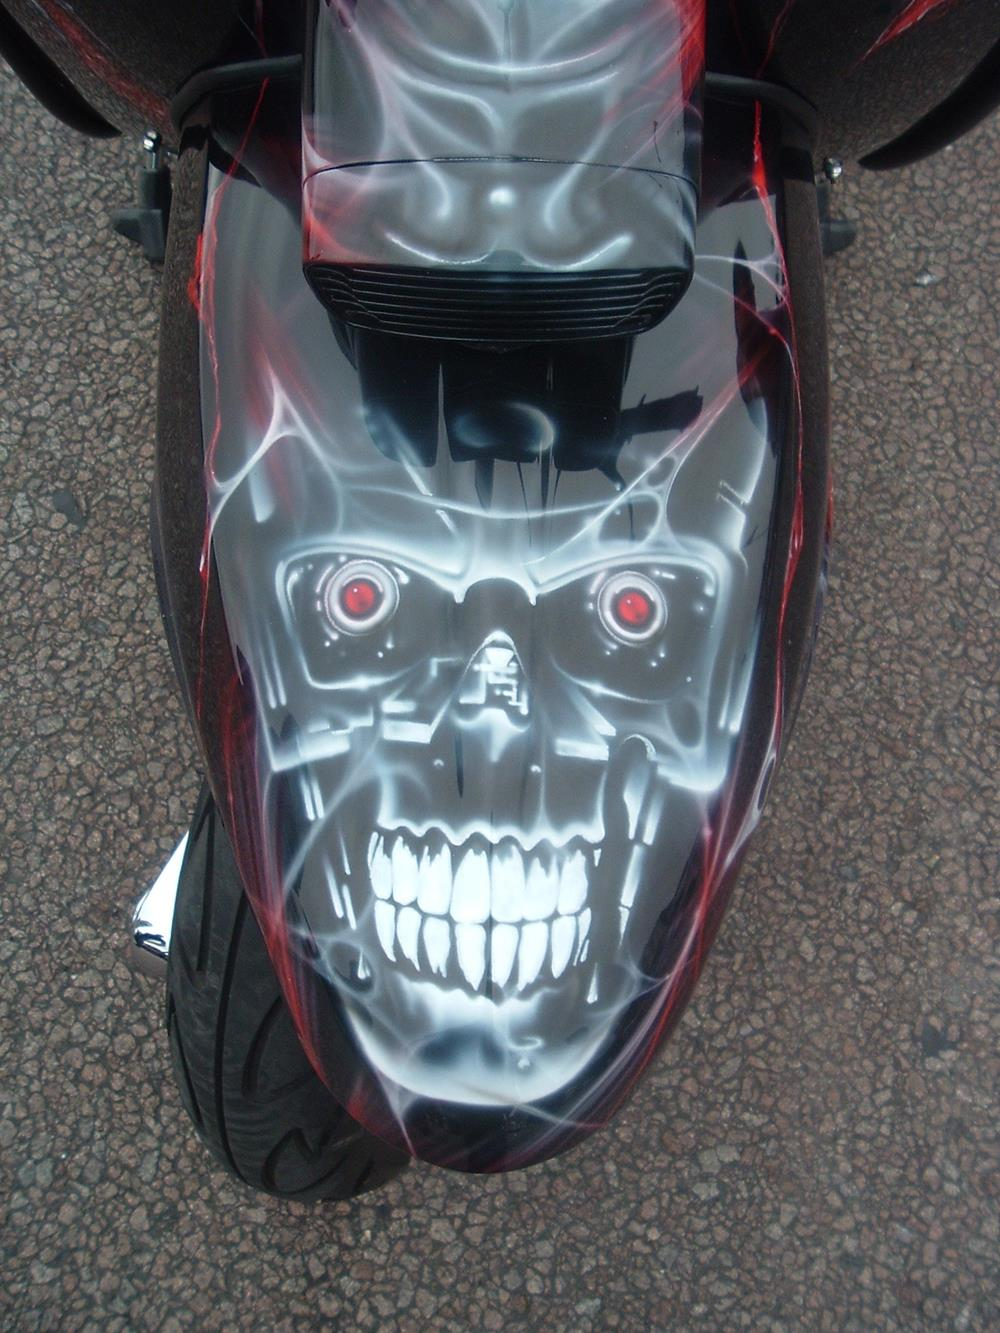 Lambretta front mudguard with horror-themed mural